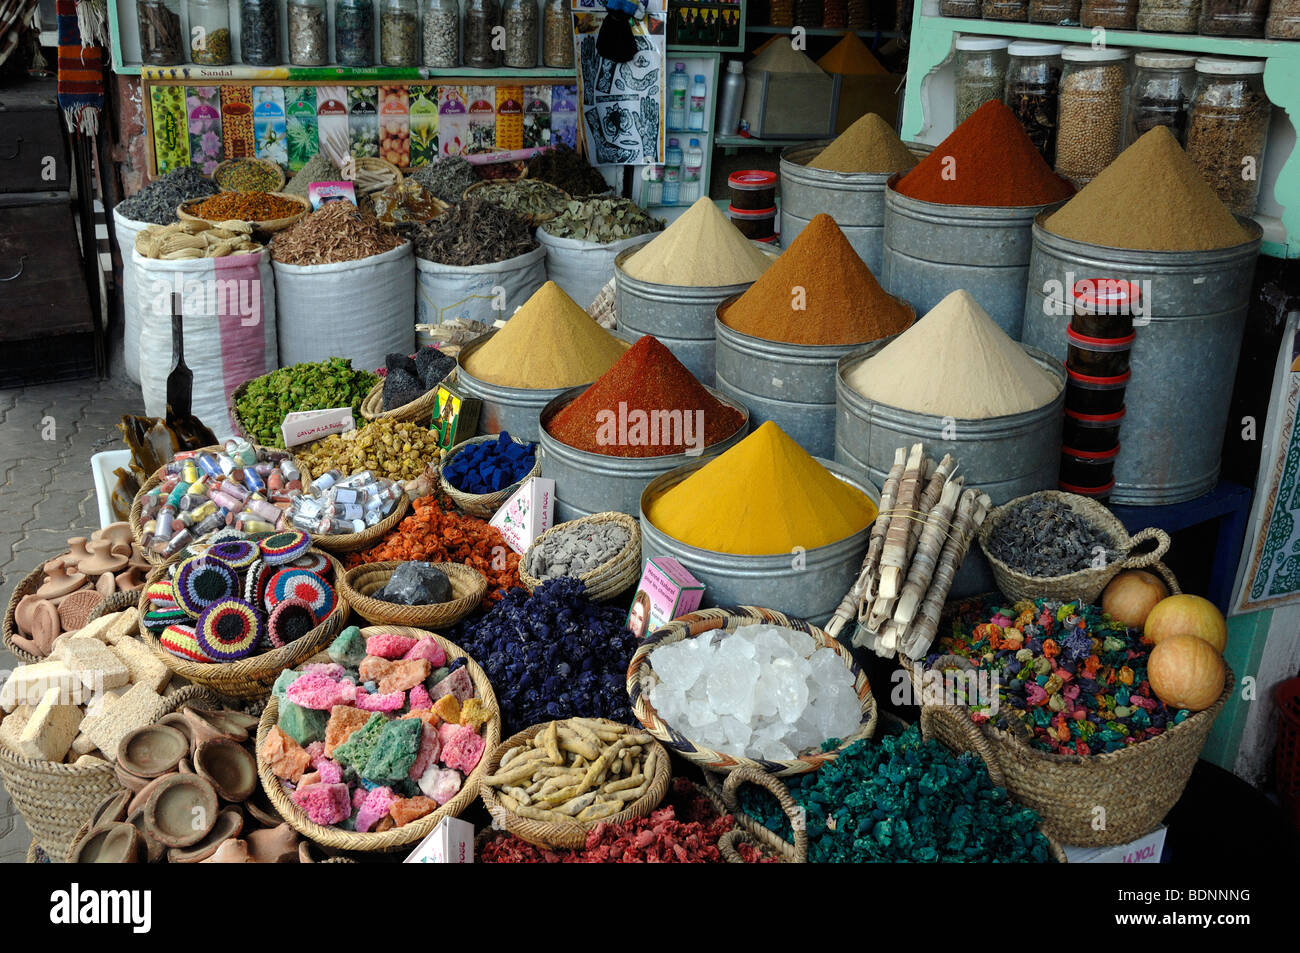 Herb & Spice Stall or Herbalist in the Spice Market, Bazaar or Souk, Marrakesh, Morocco Stock Photo